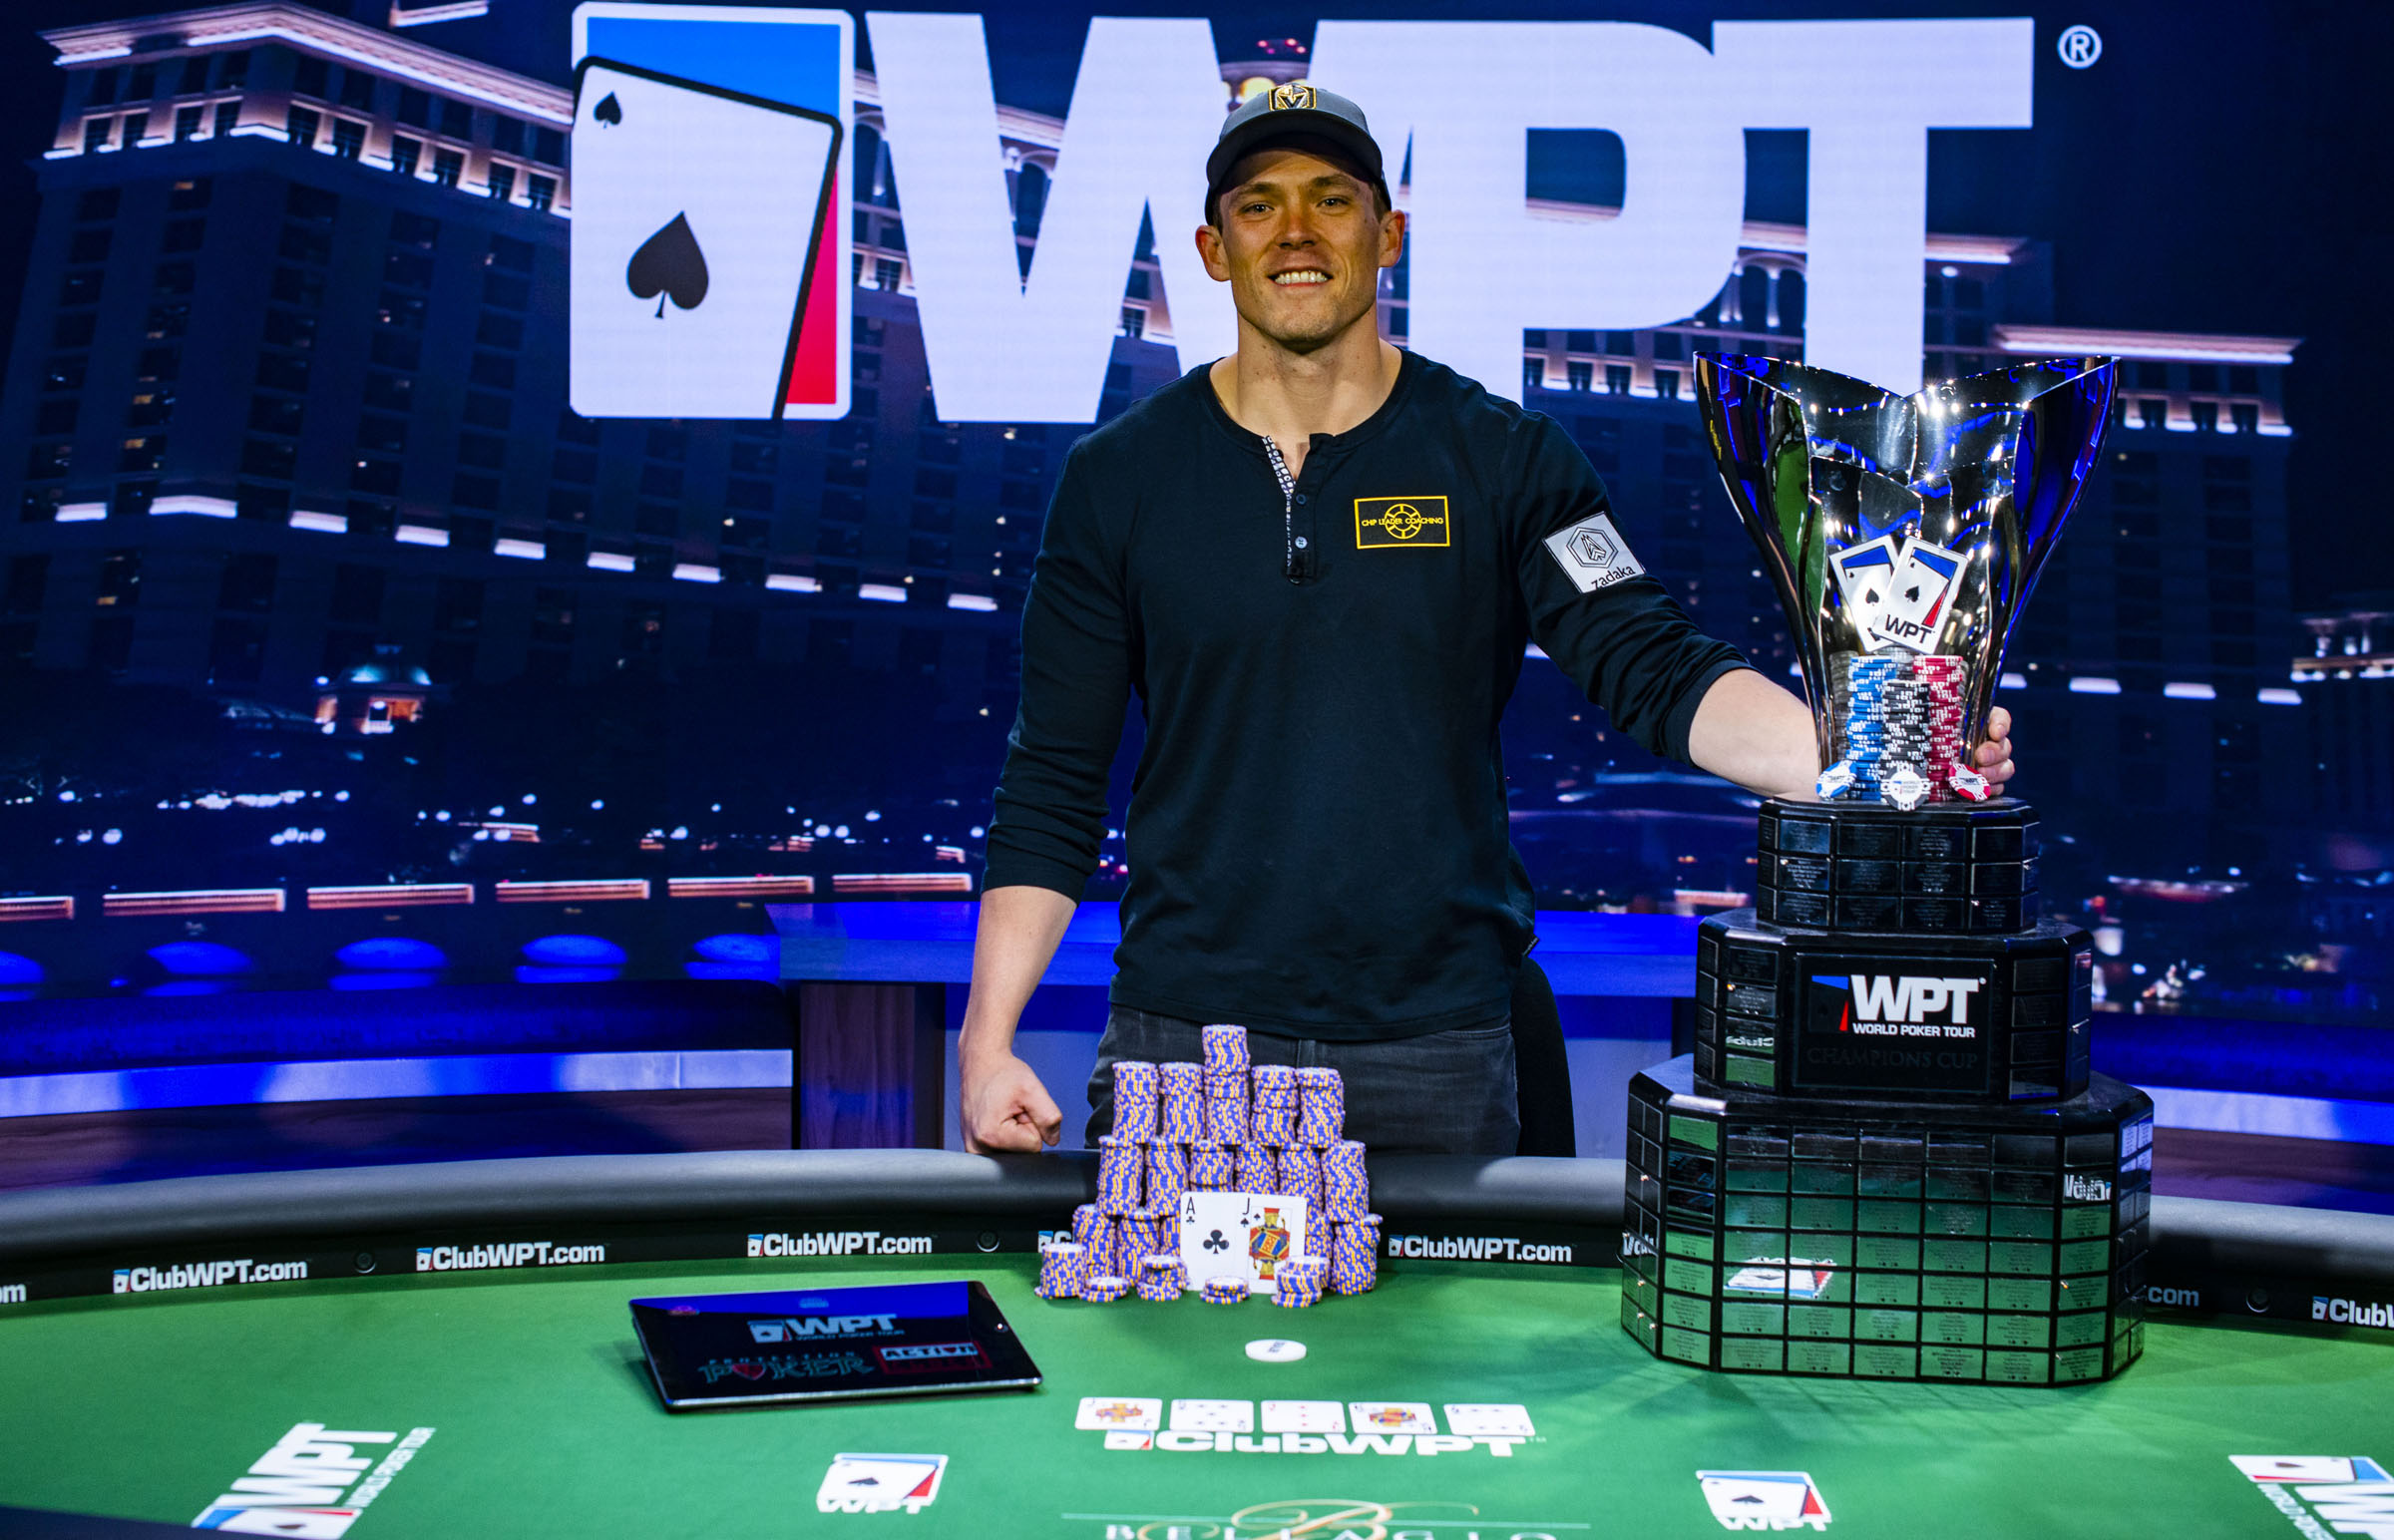 Alex Foxen WPT win